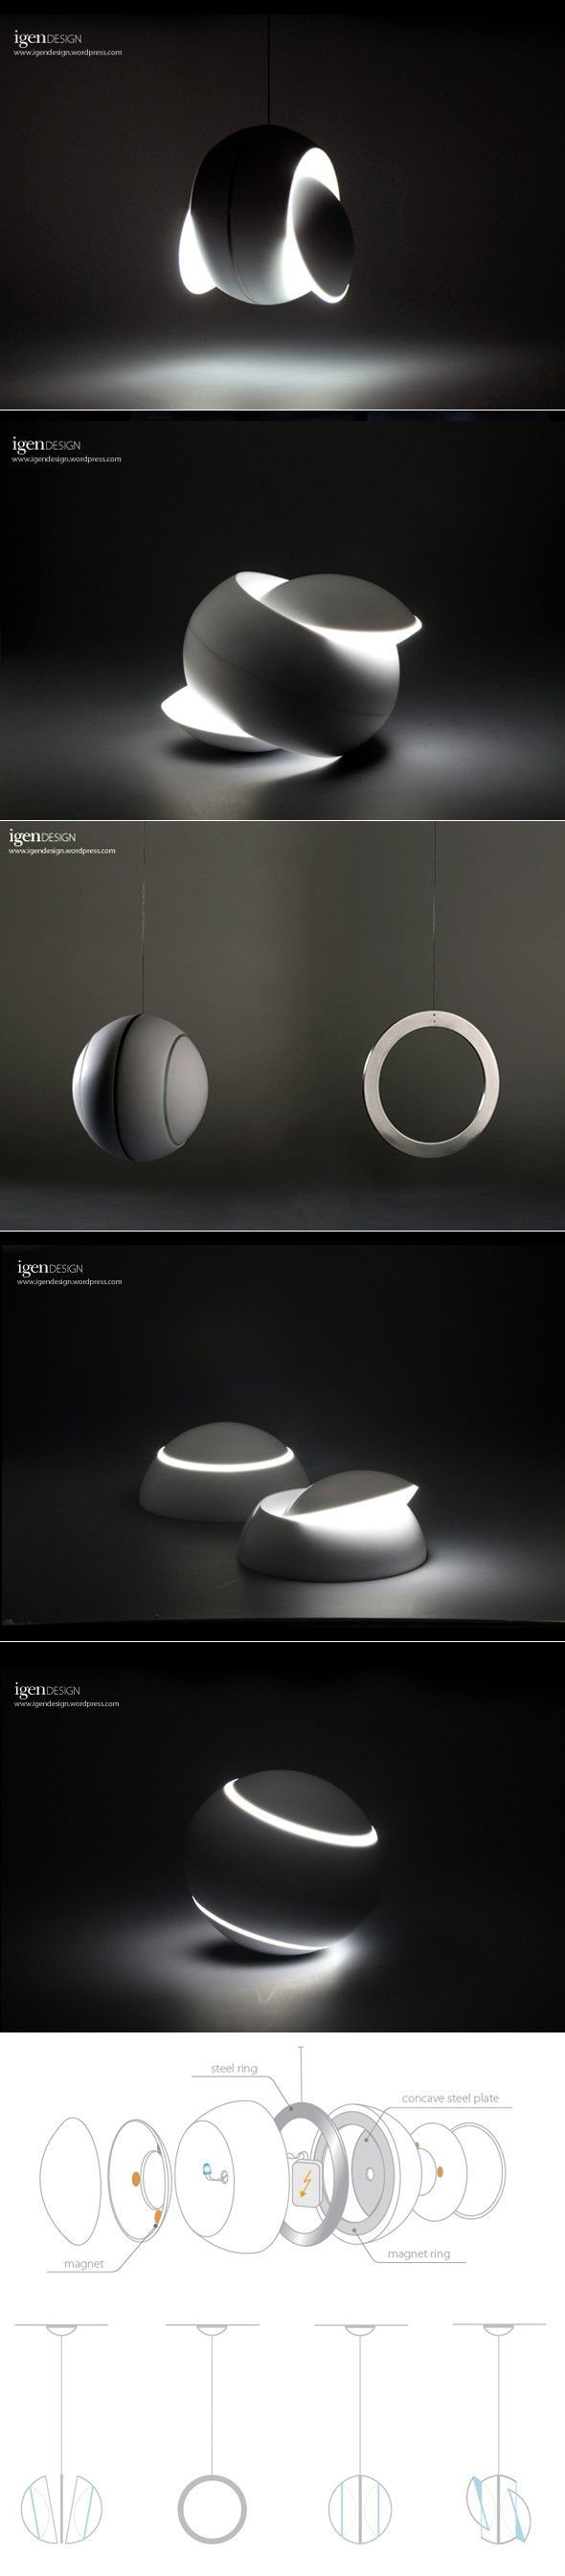 Lamp Swingy Magnative by IGEN Design